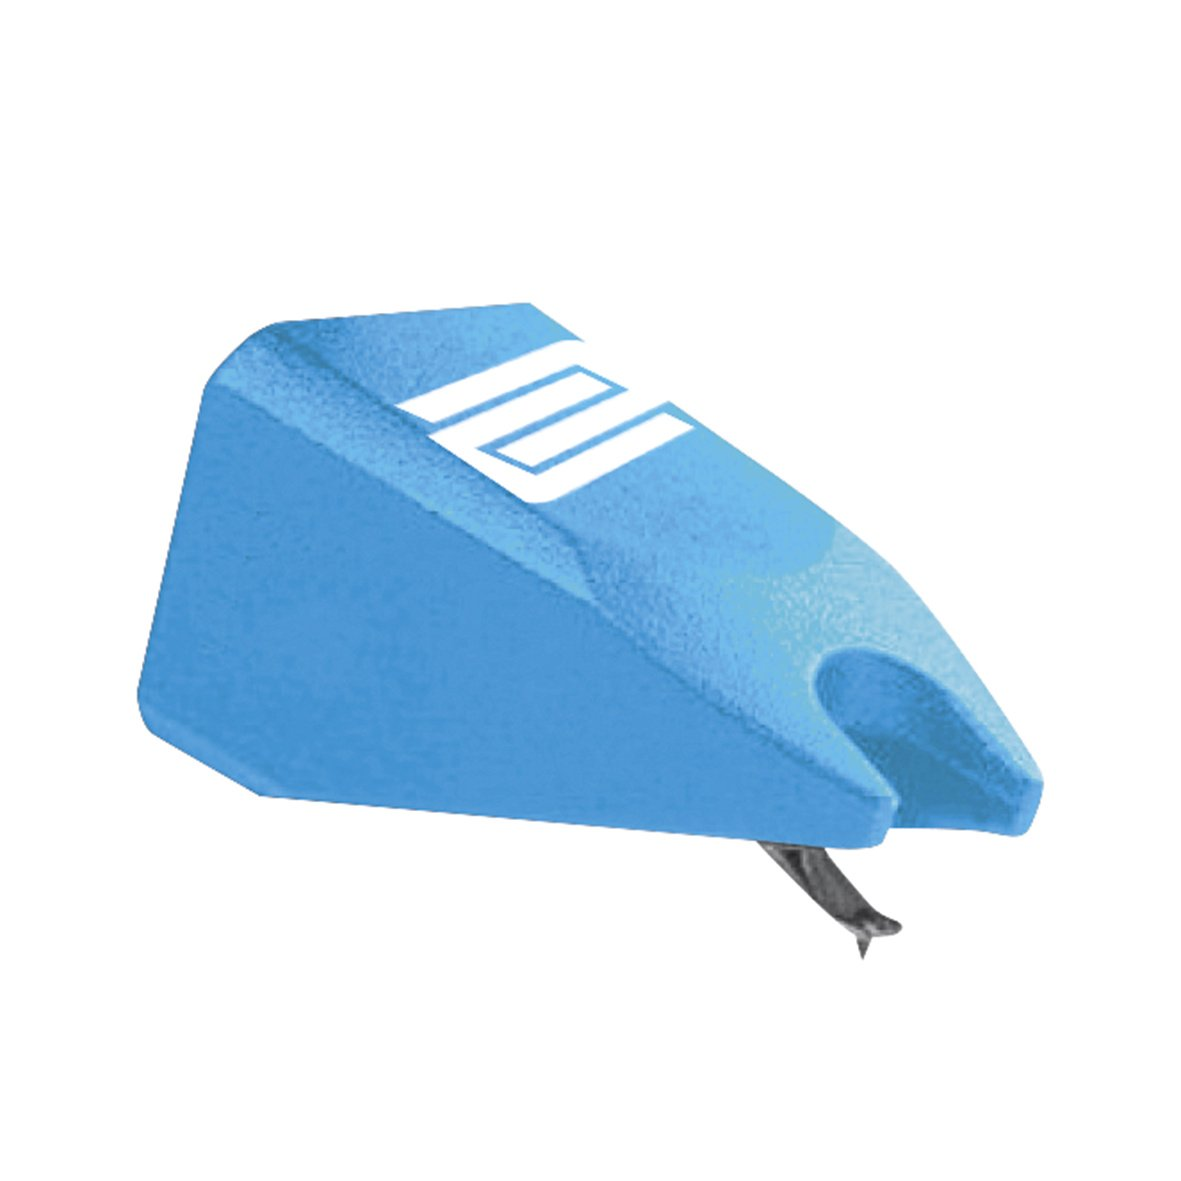 Reloop Replacement Stylus for Concorde Blue Turntable